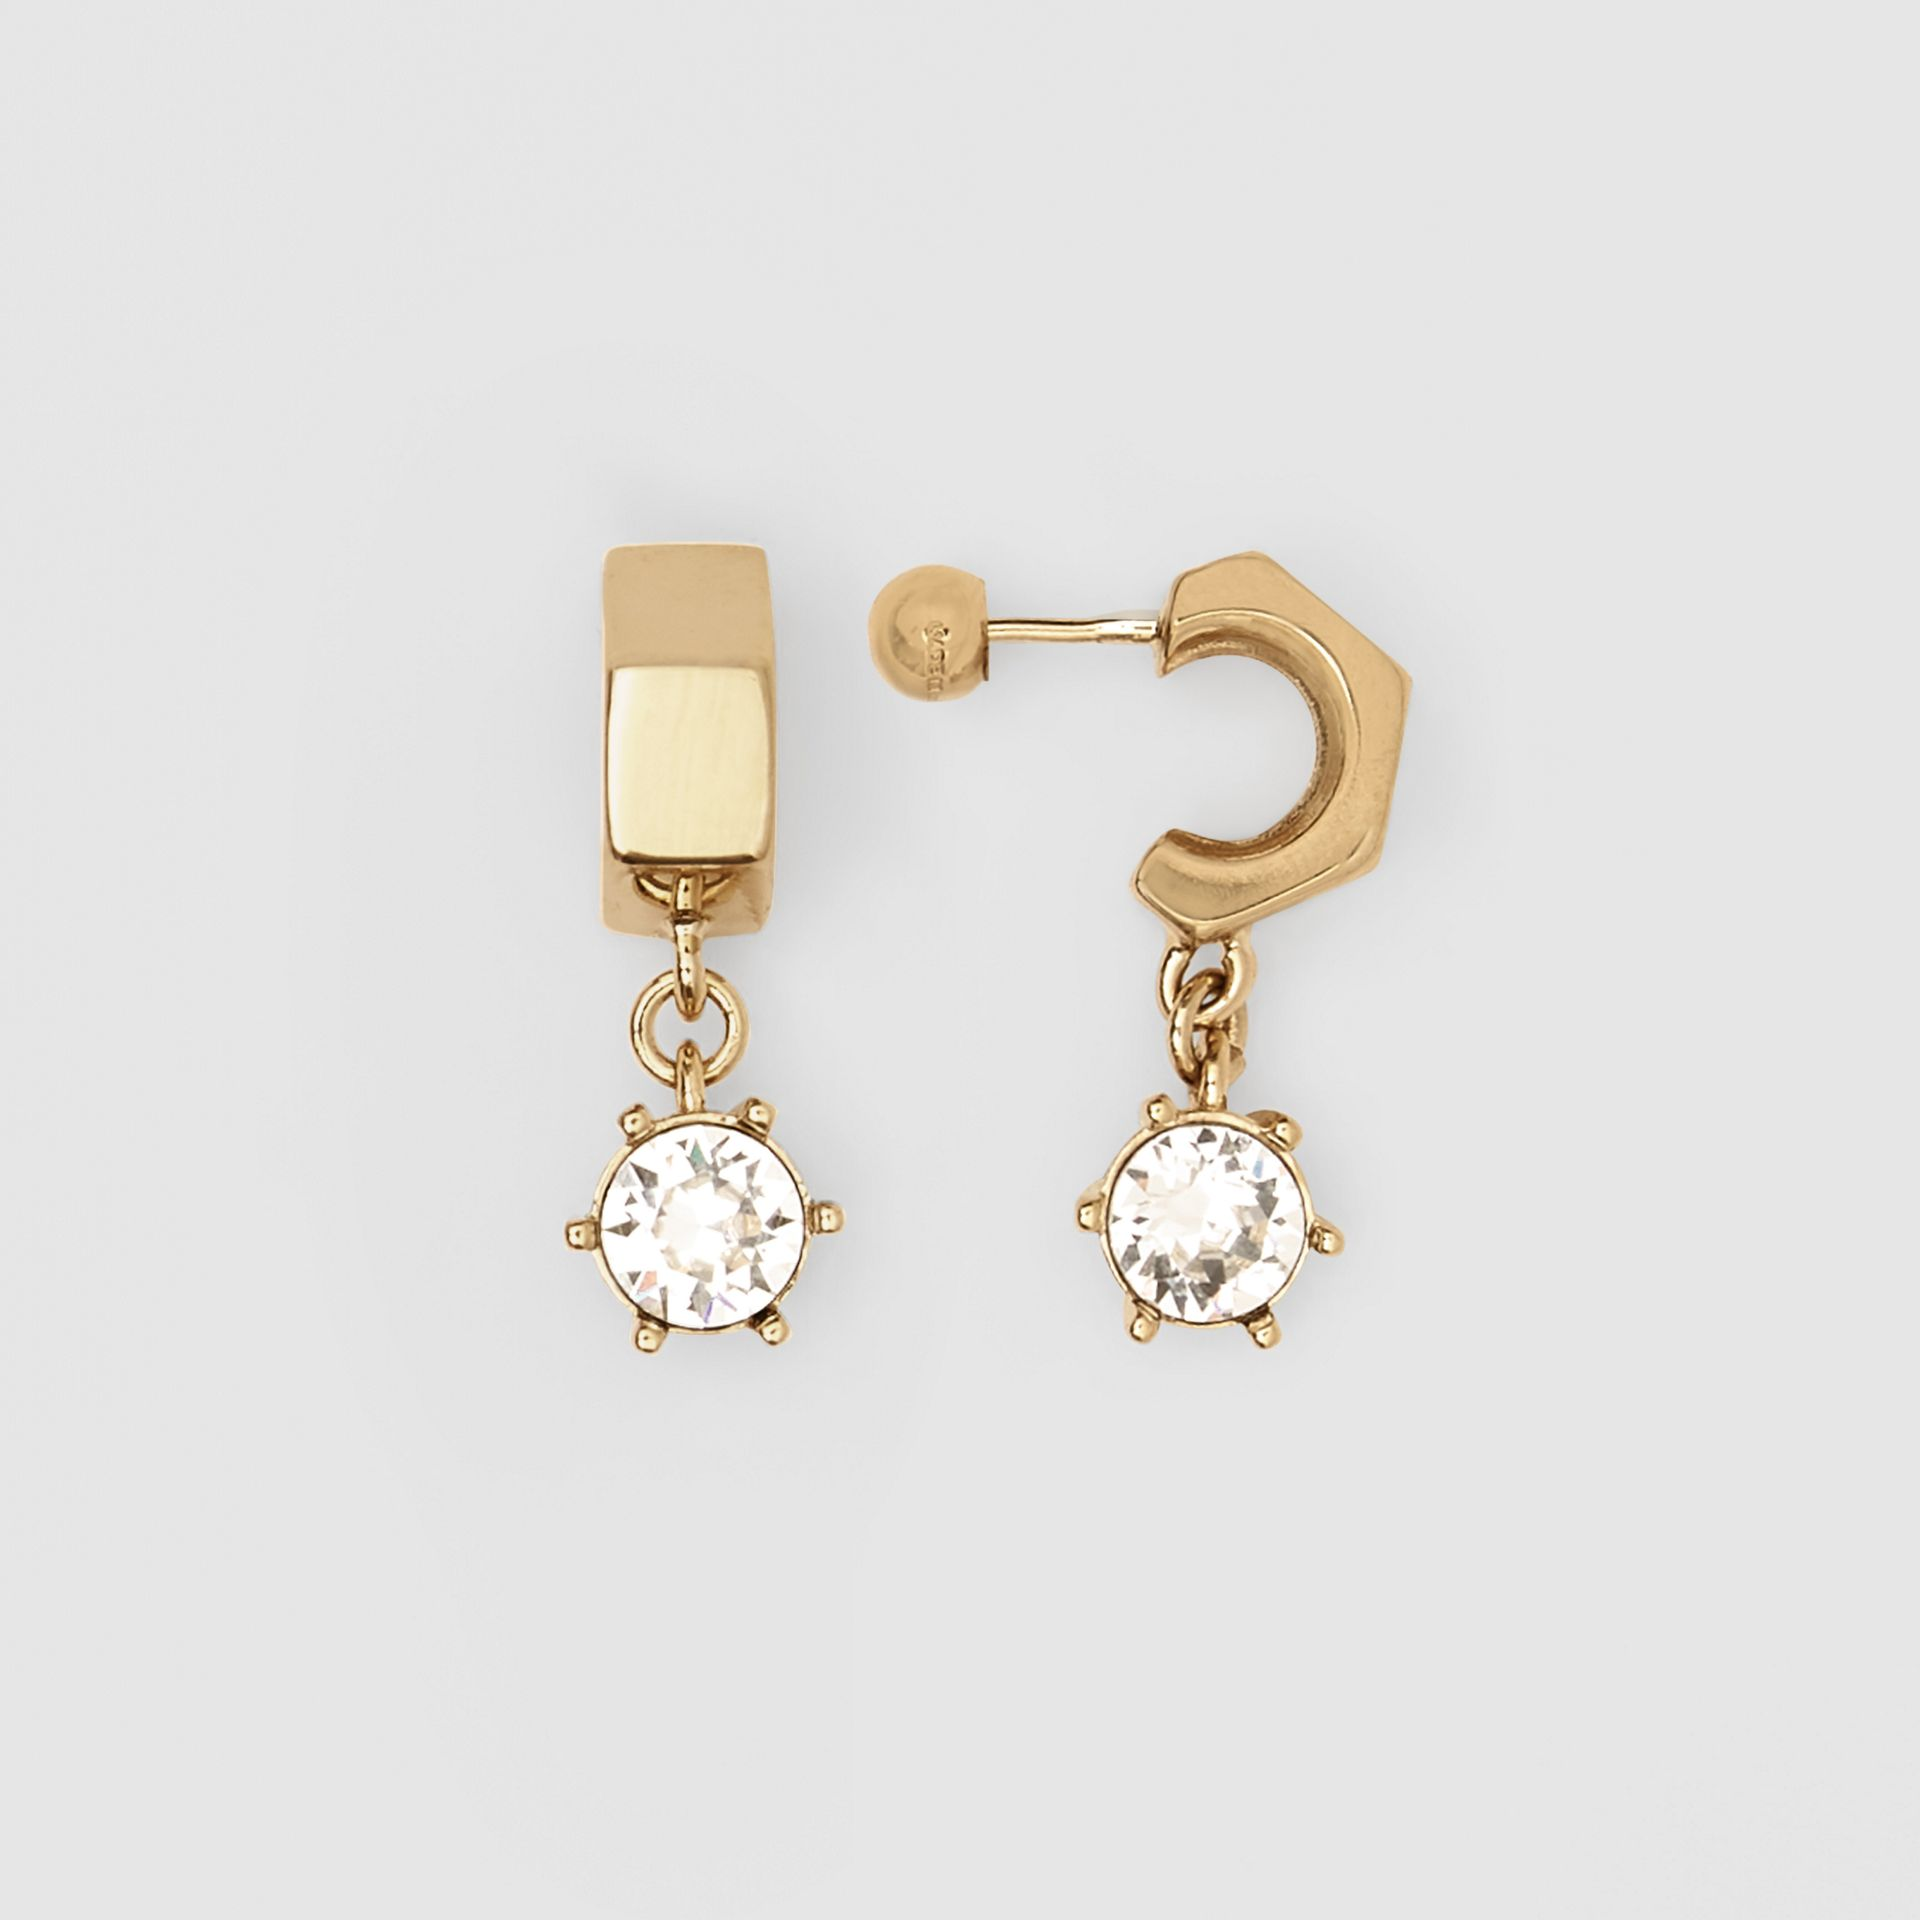 Crystal Charm Gold-plated Nut Earrings in Light - Women | Burberry Singapore - gallery image 3